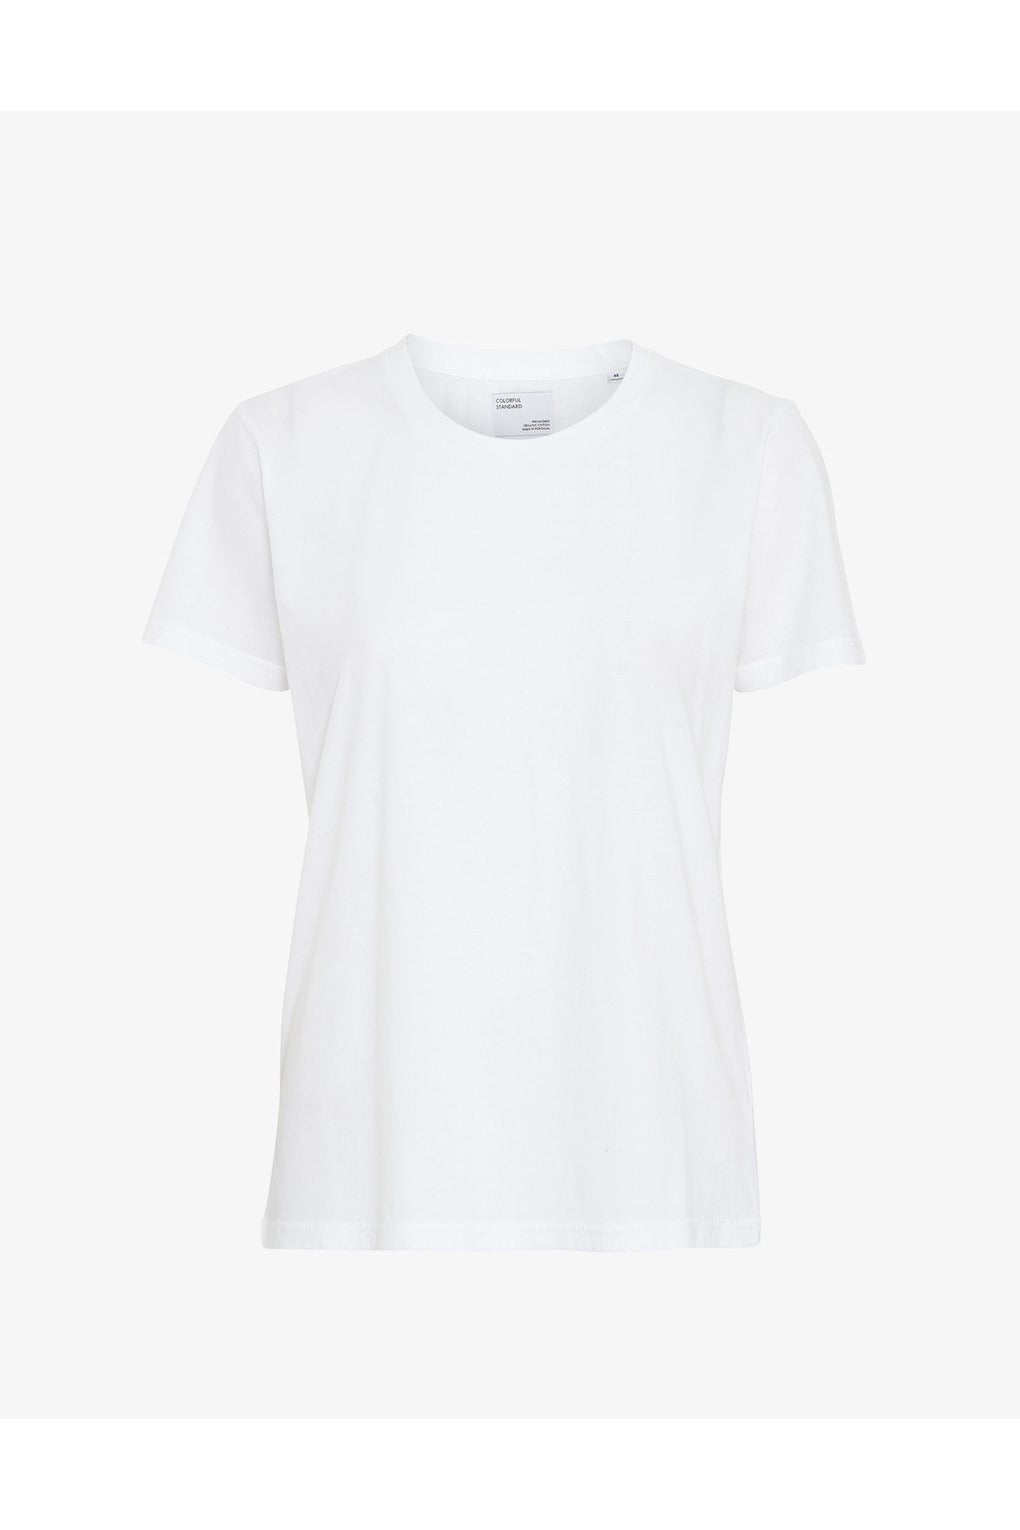 WOMEN LIGHT ORGANIC TEE OPTICAL WHITE - BEYOND STUDIOS